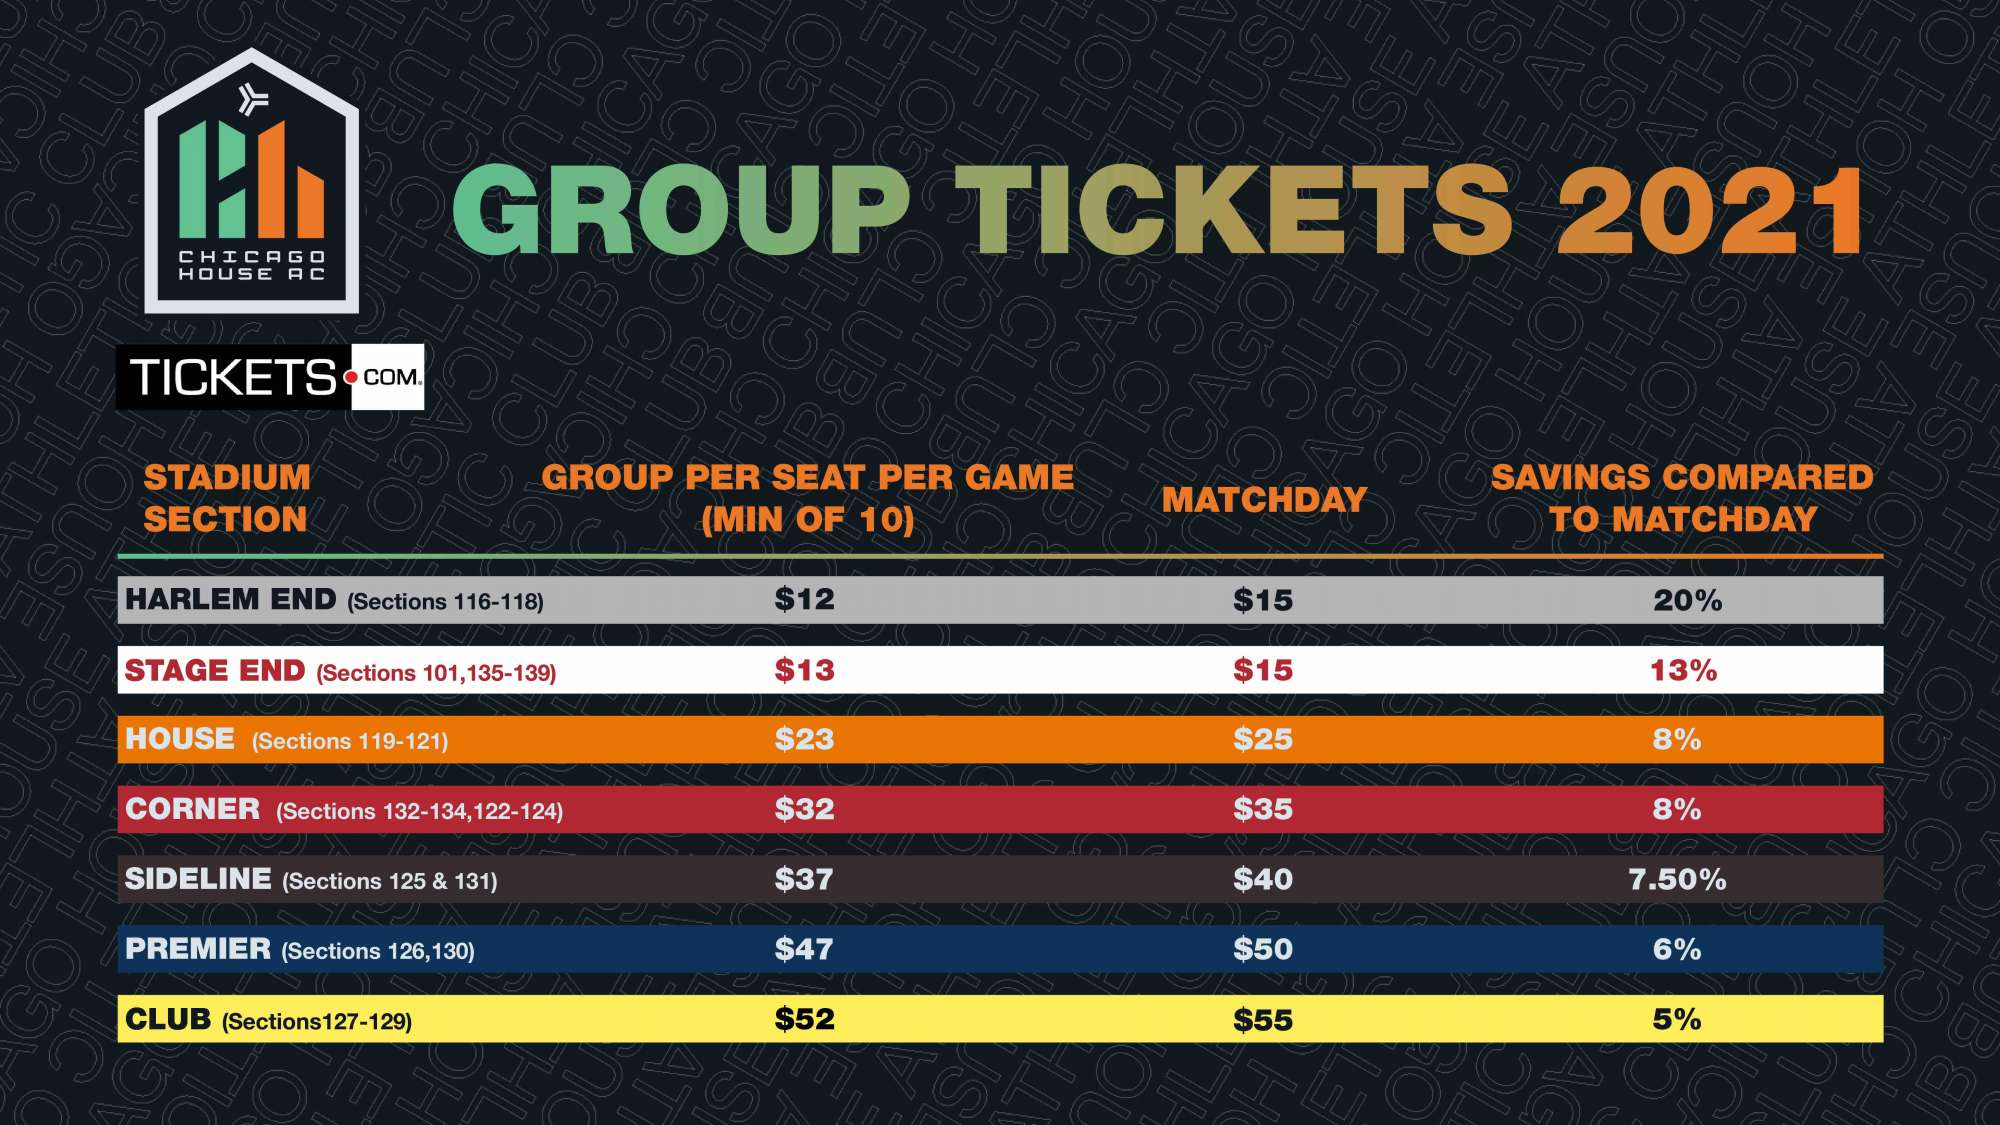 Chicago House AC Group Tickets